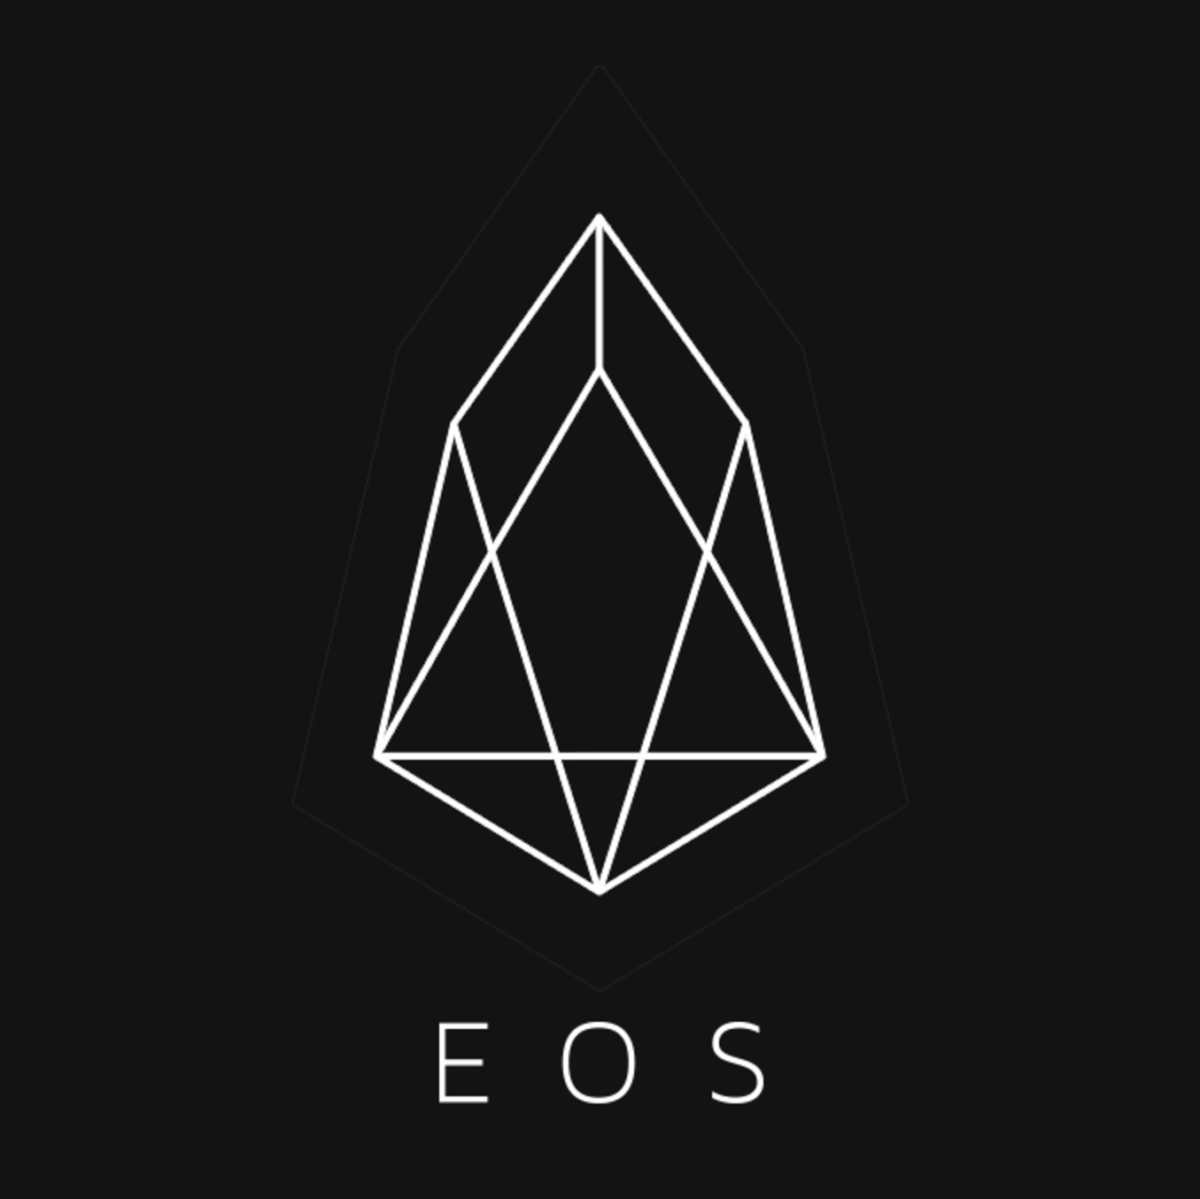 Eos-BlockOne-1200x1199.png